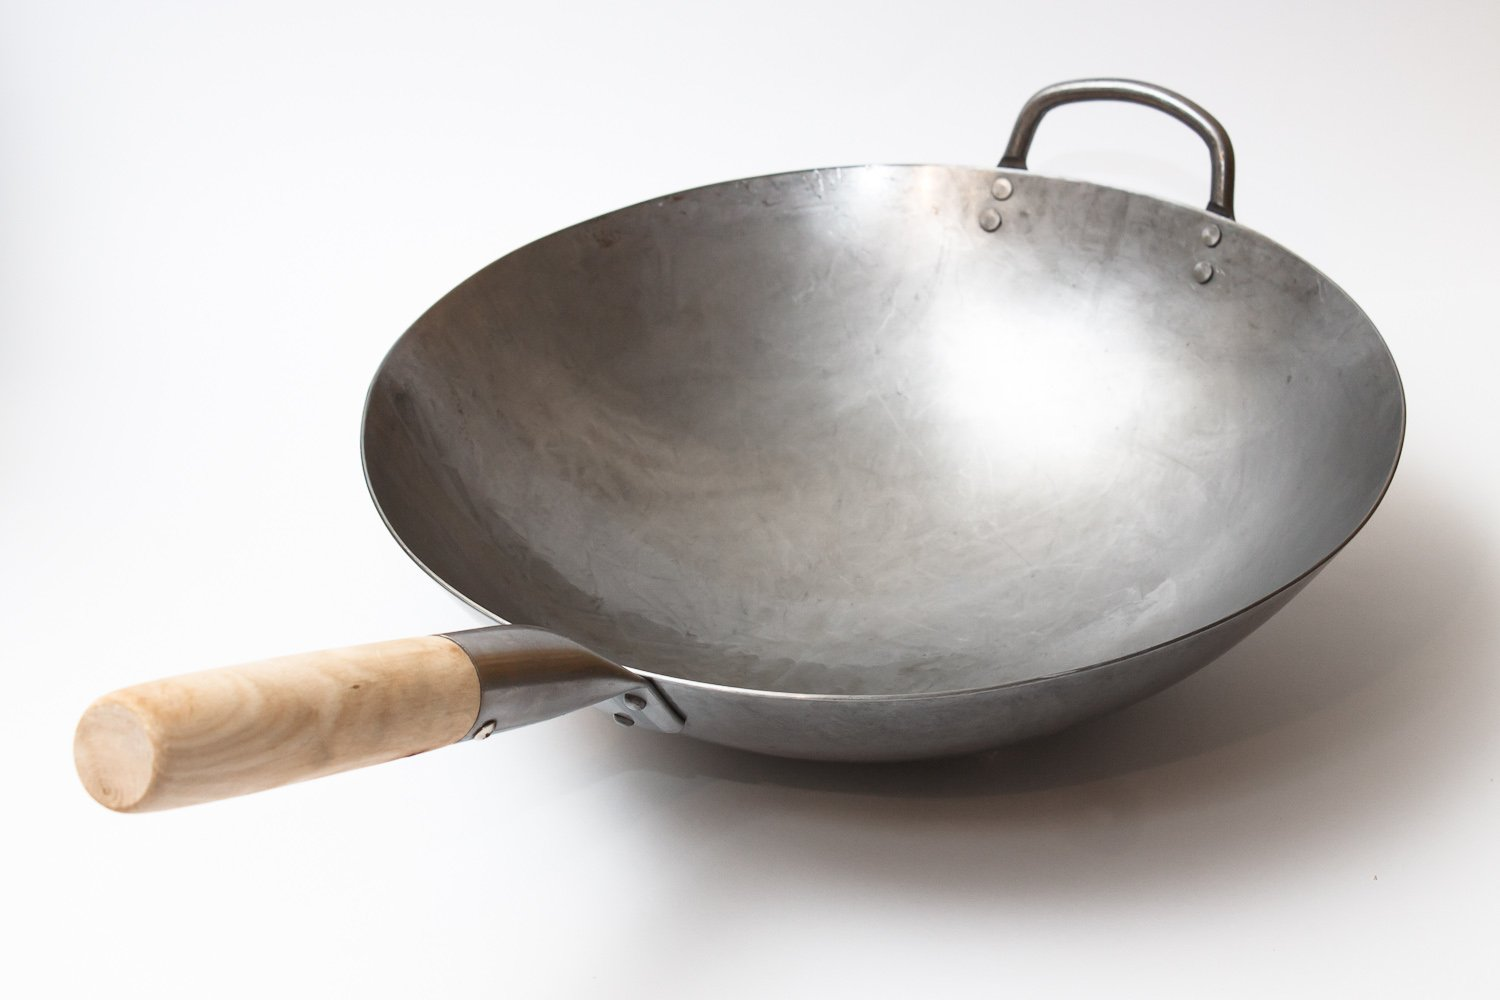 Craft Wok Traditional Hand Hammered Carbon Steel Pow Wok with Wooden and Steel Helper Handle (14 Inch, Round Bottom) / 731W88 by Craft Wok (Image #1)